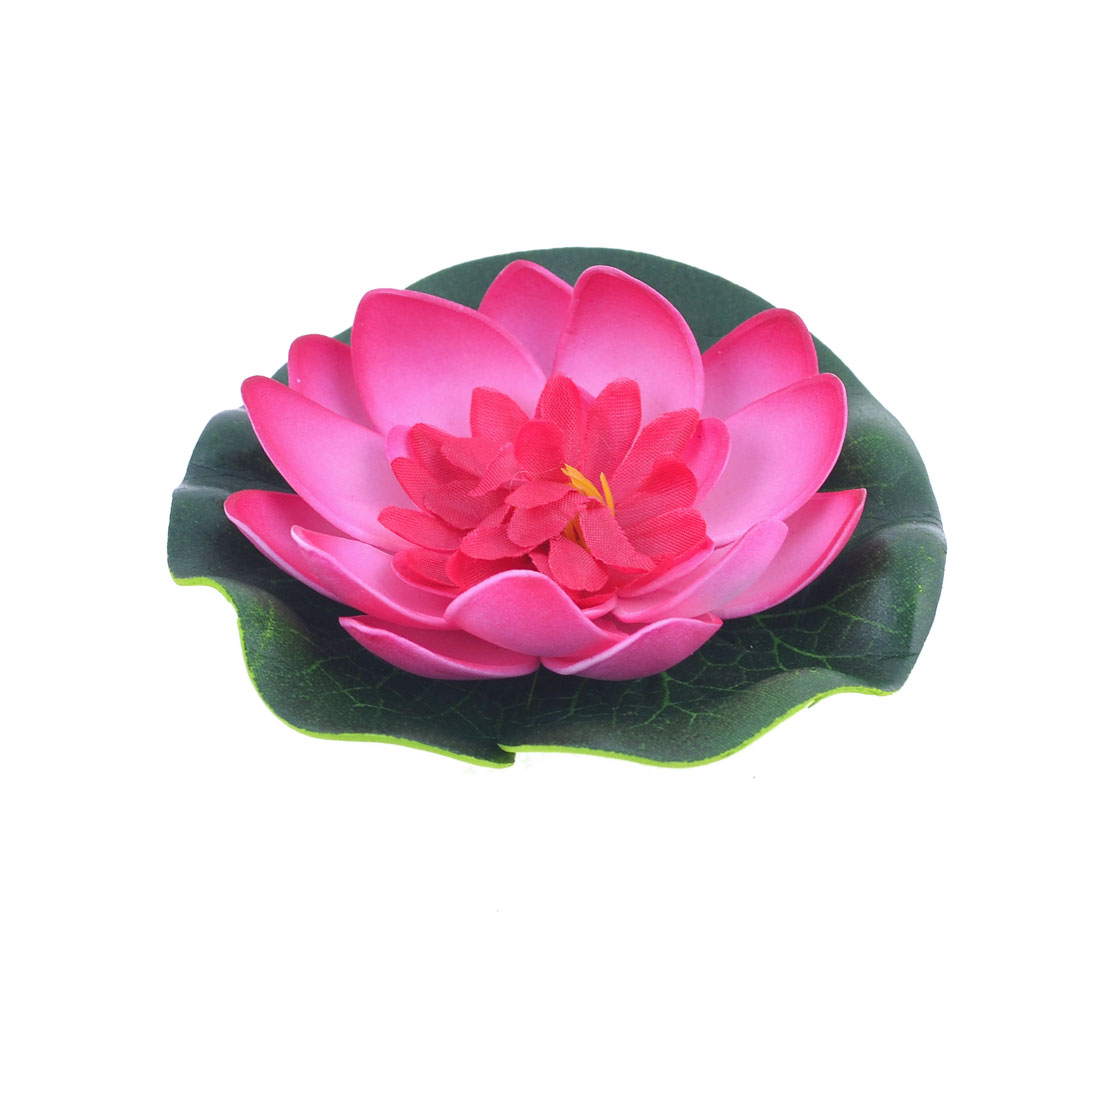 Aquarium Landscaping Green Leaf Magenta Foam Lotus Flower Decoration